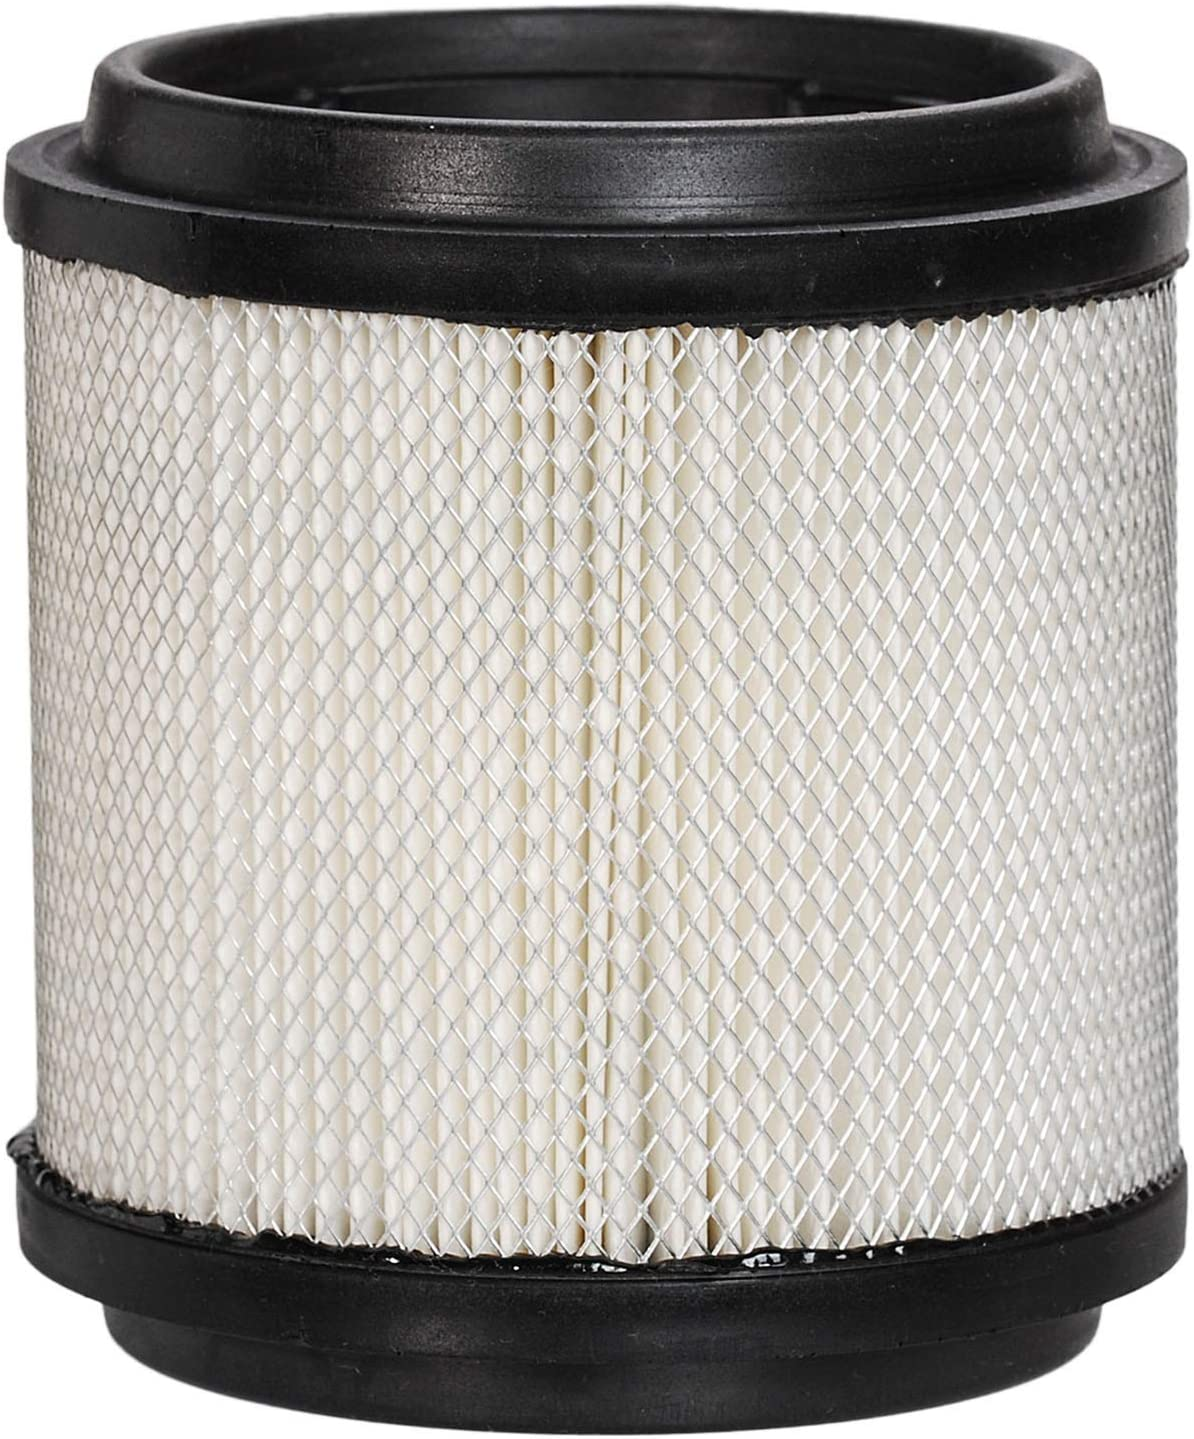 HIFROM 7080369 Air Filter Cleaner with Small Inline Fuel Filter 2530009 Spark Plug Replacement for ATV Polaris 300 350L Polaris 300 350L Big Boss 300 Xplorer 300 Xpress